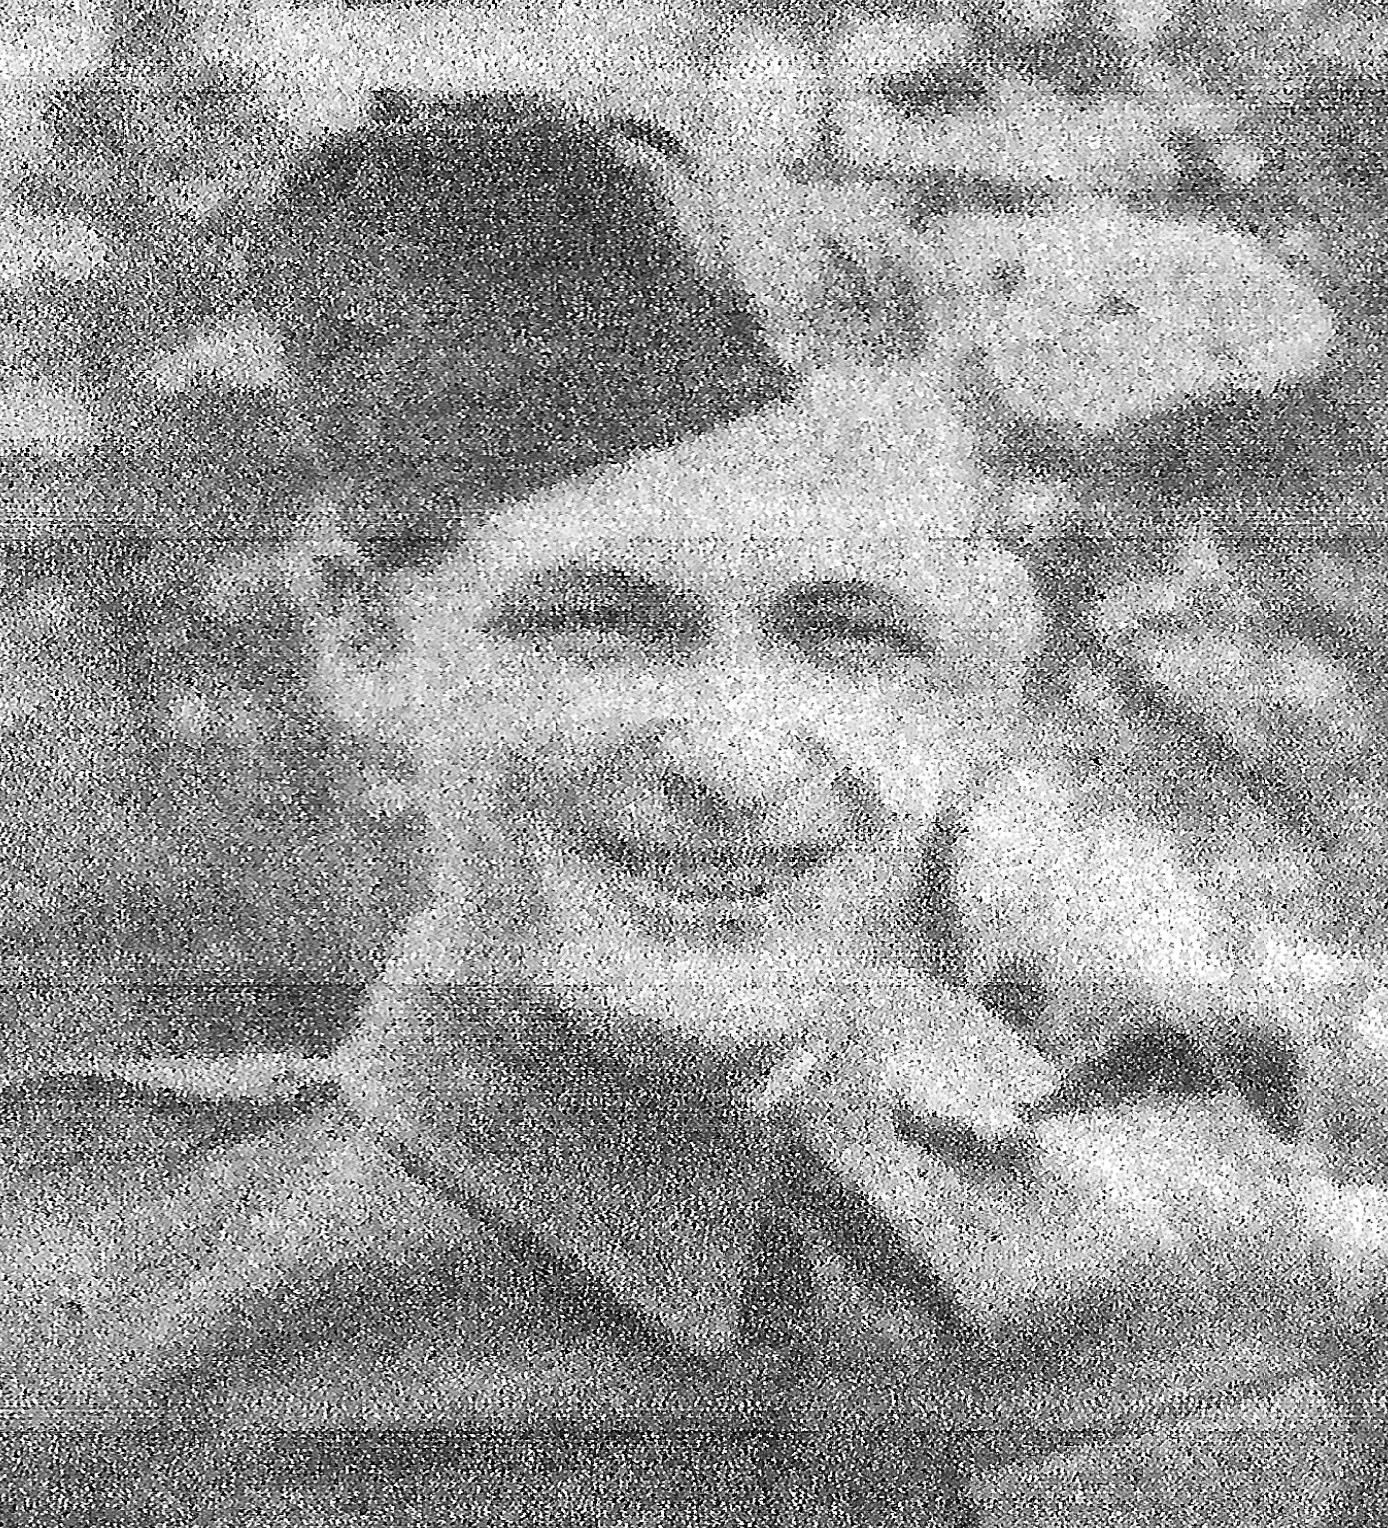 Newspaper clipping– Local Man Makes Supreme Sacrifice article October 1943